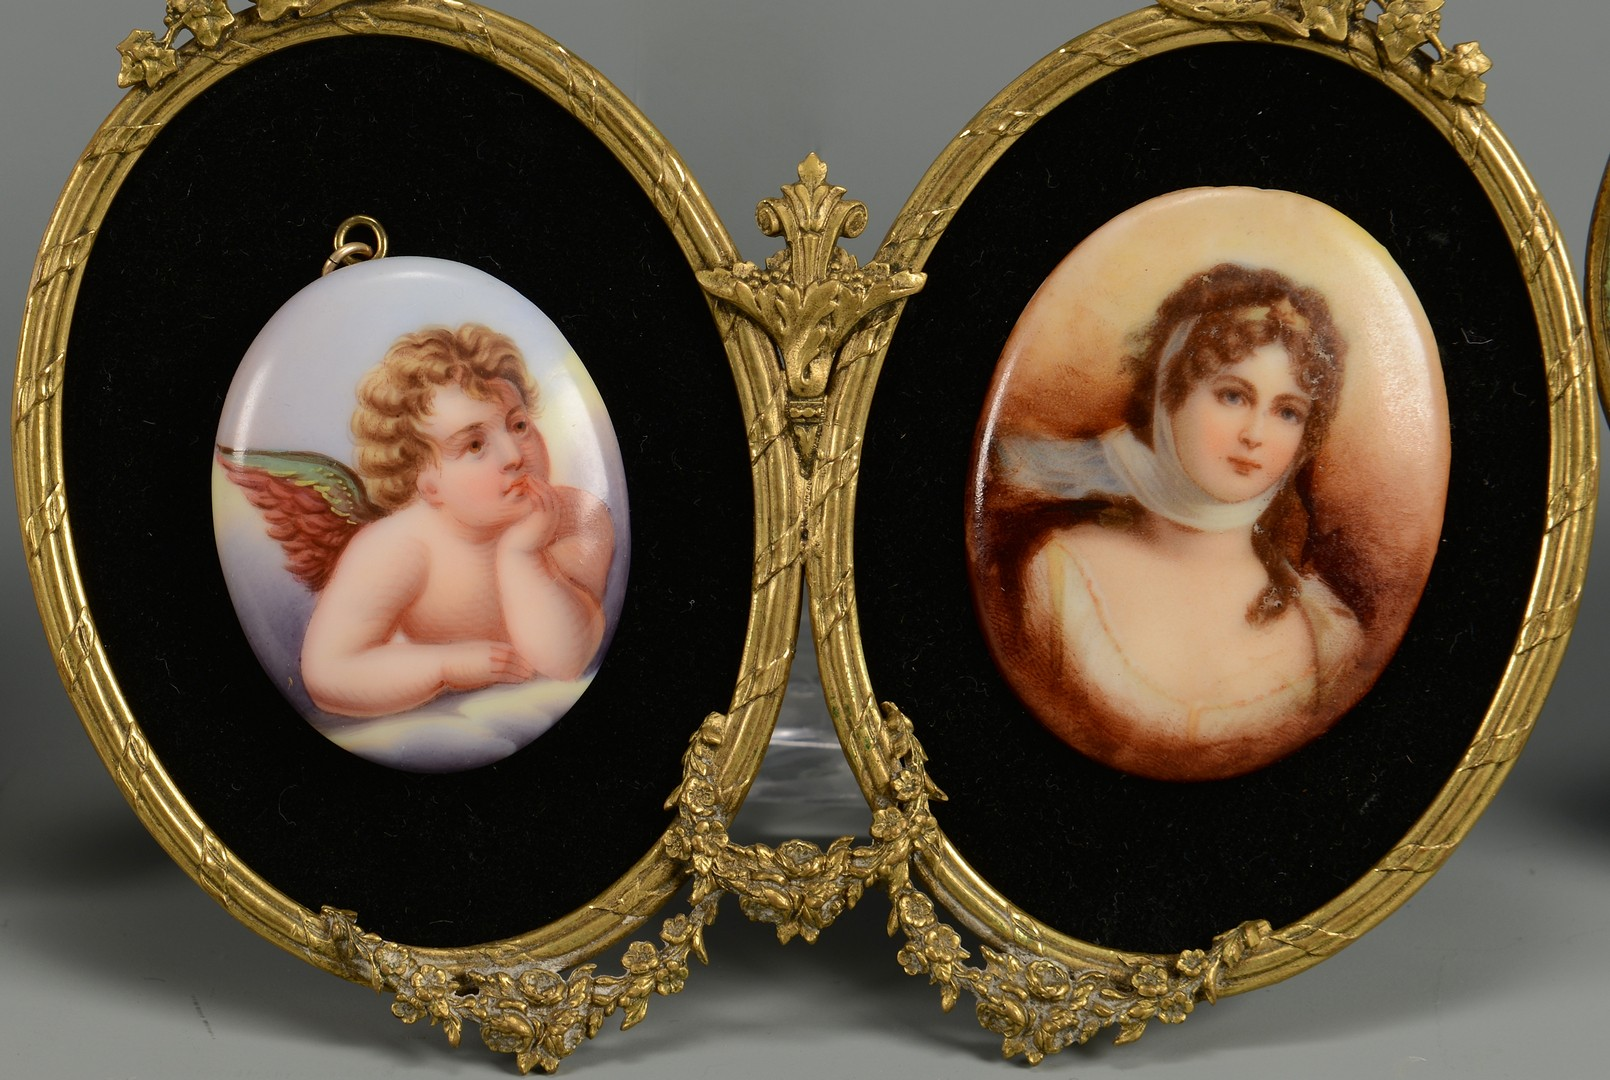 Lot 110: Five Framed Miniature Portraits